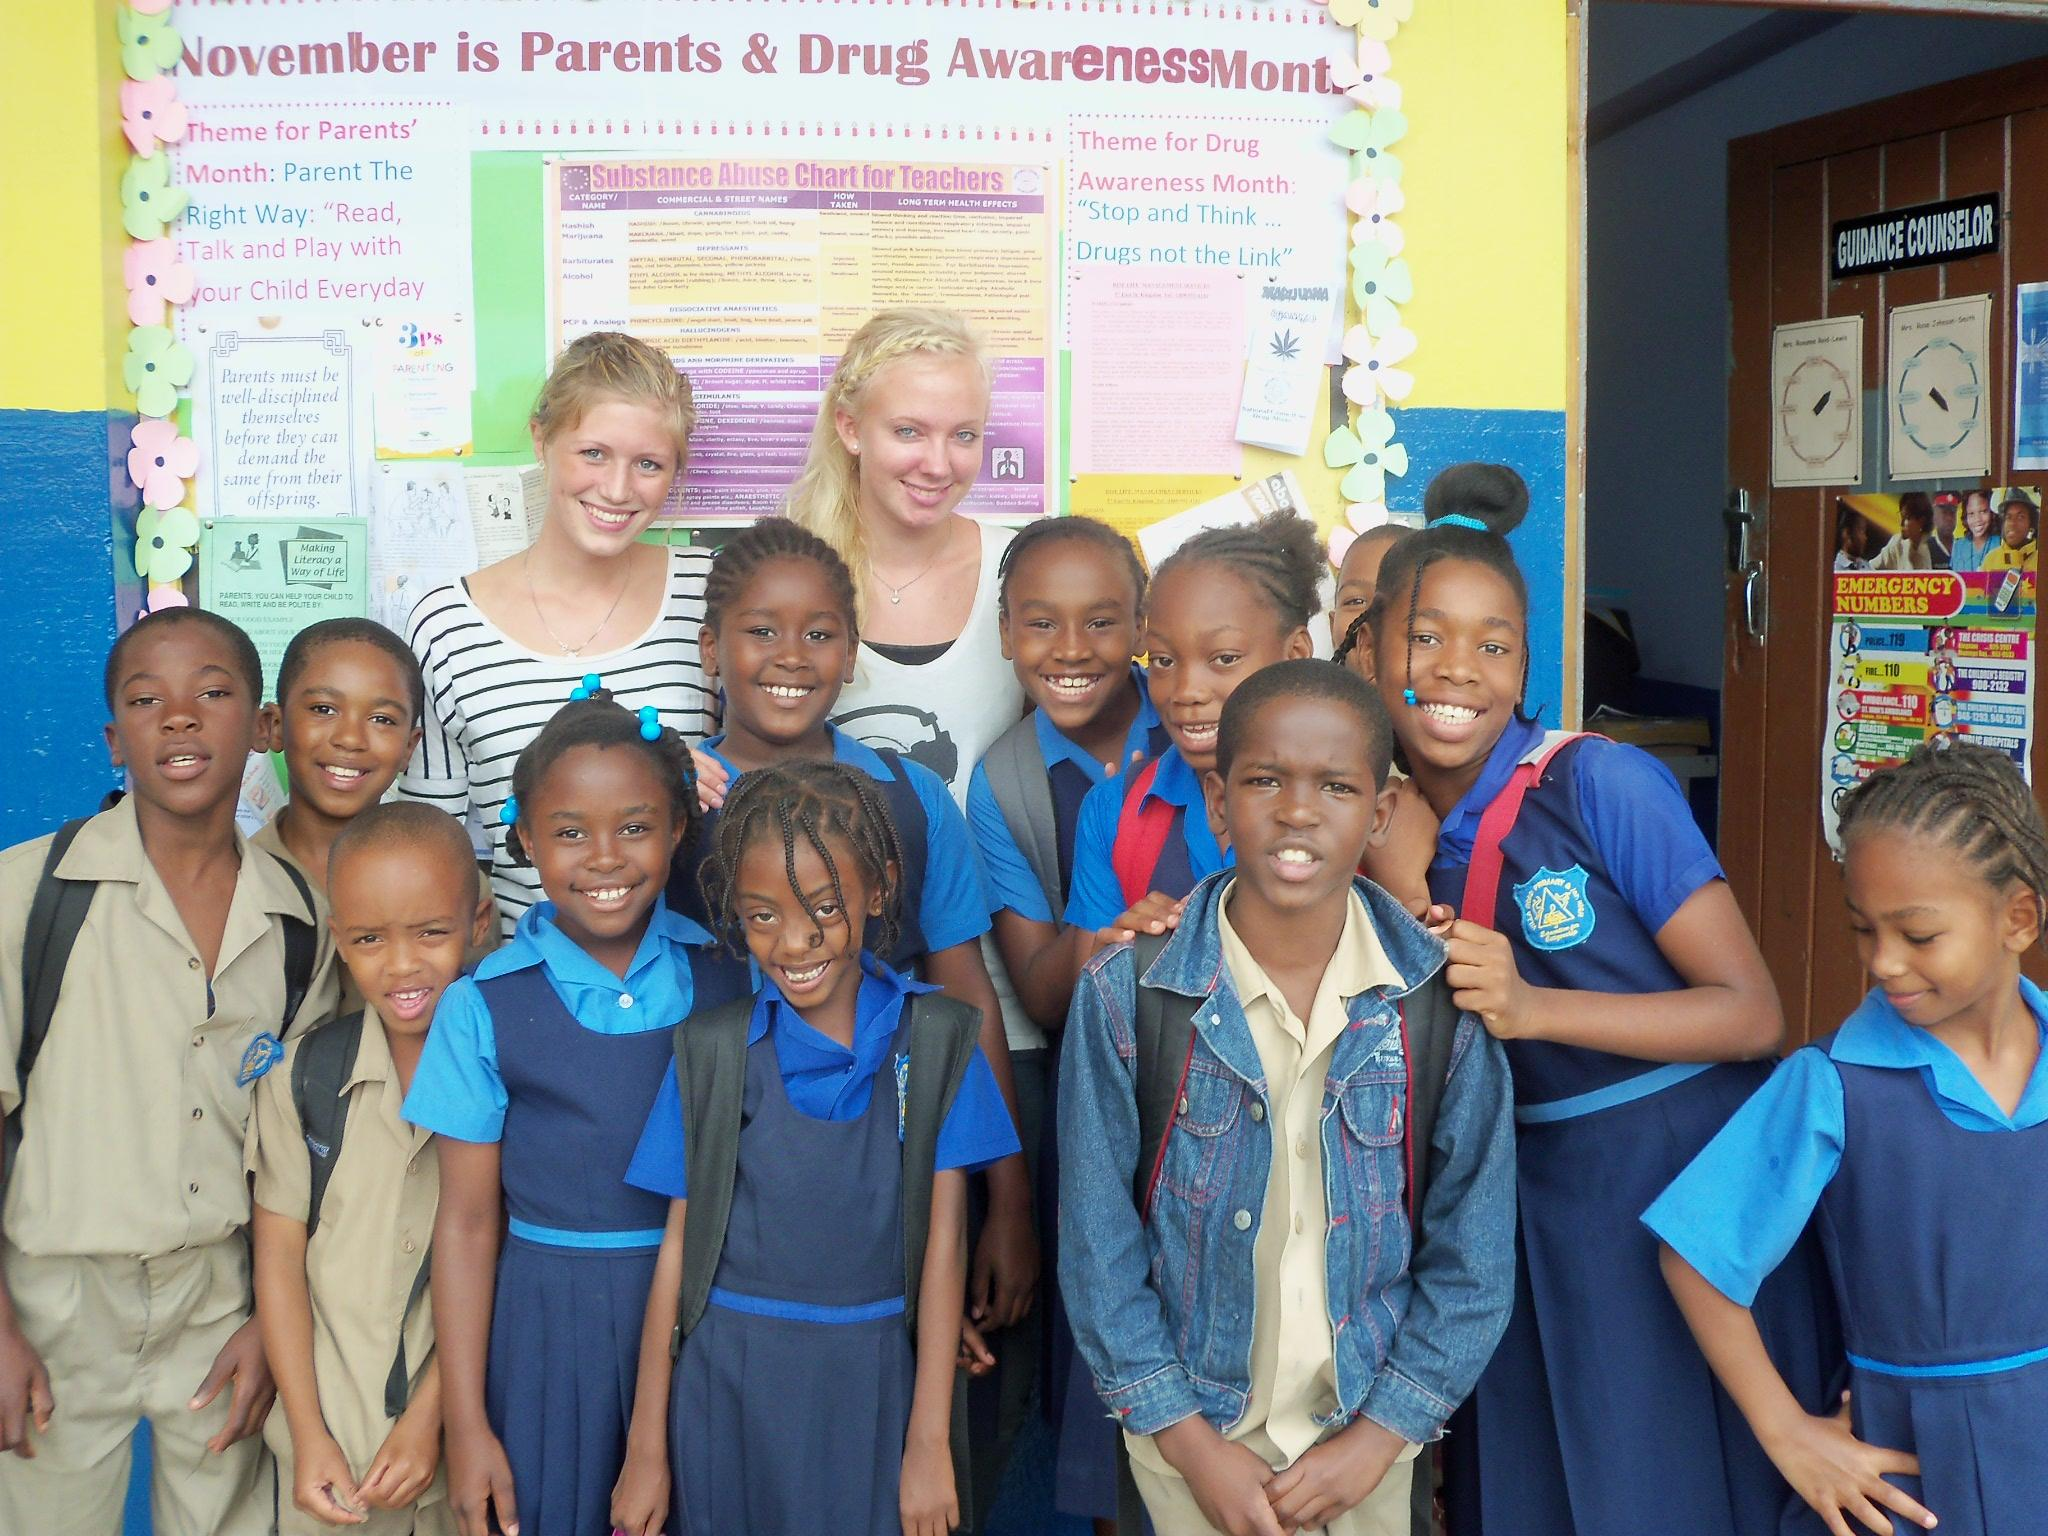 Projects Abroad volunteers teaching in Jamaica pose with their students